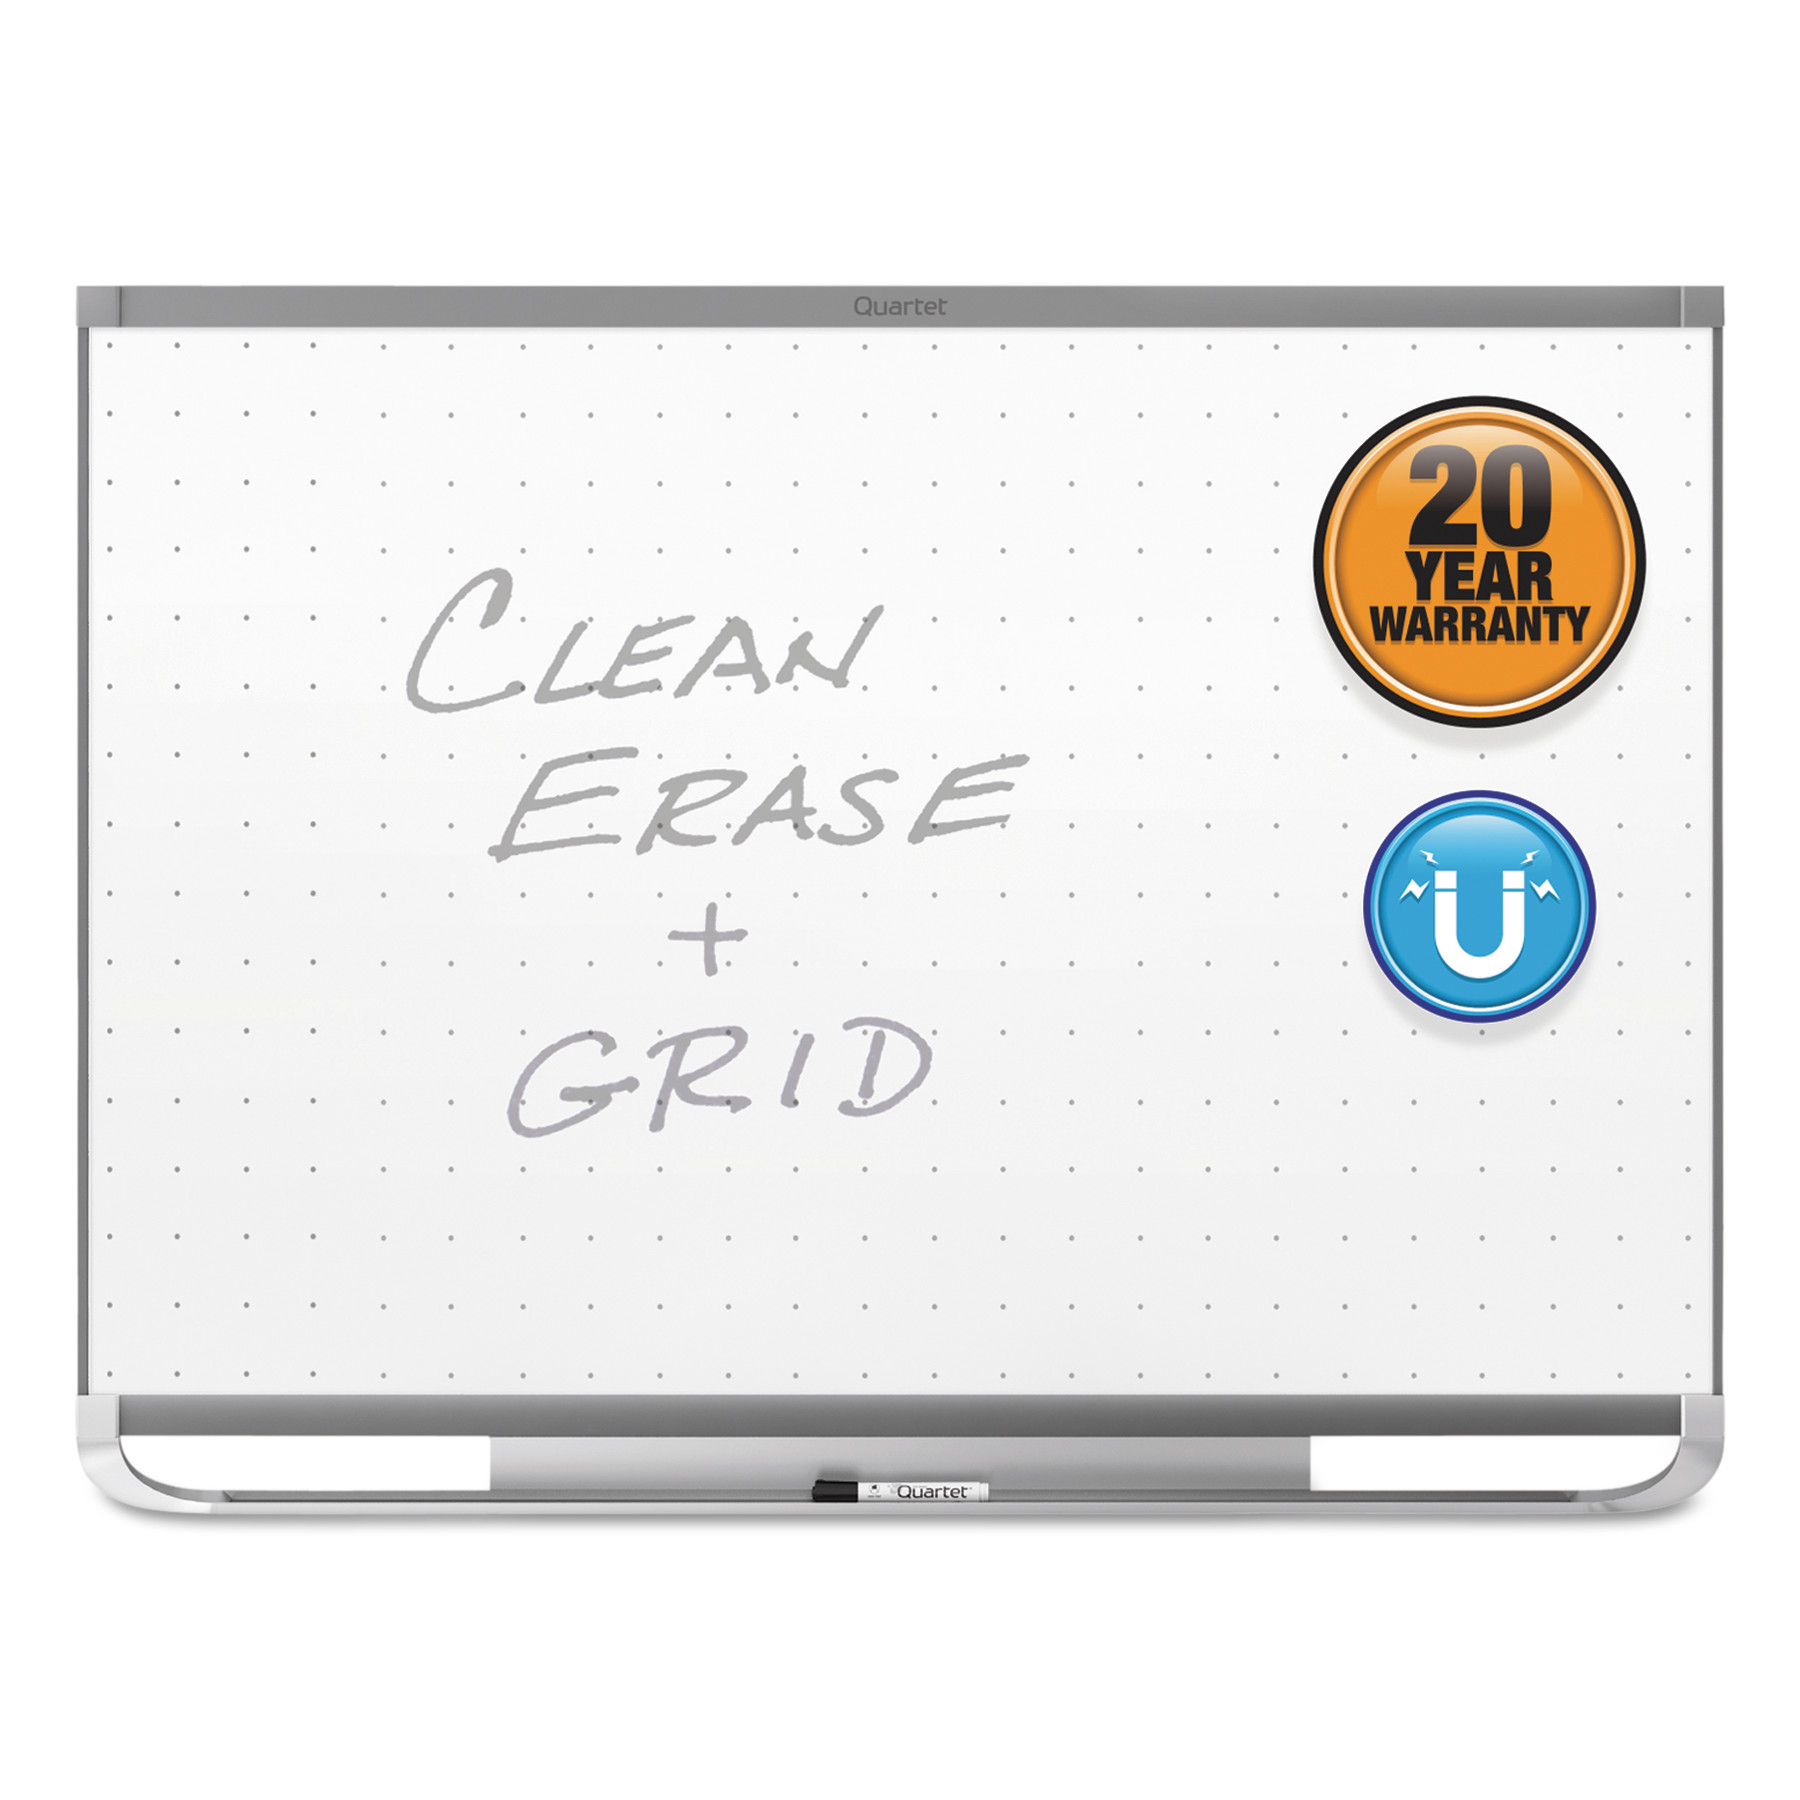 Quartet Prestige 2 Magnetic Total Erase Whiteboard, 96 x 48, Graphite Frame